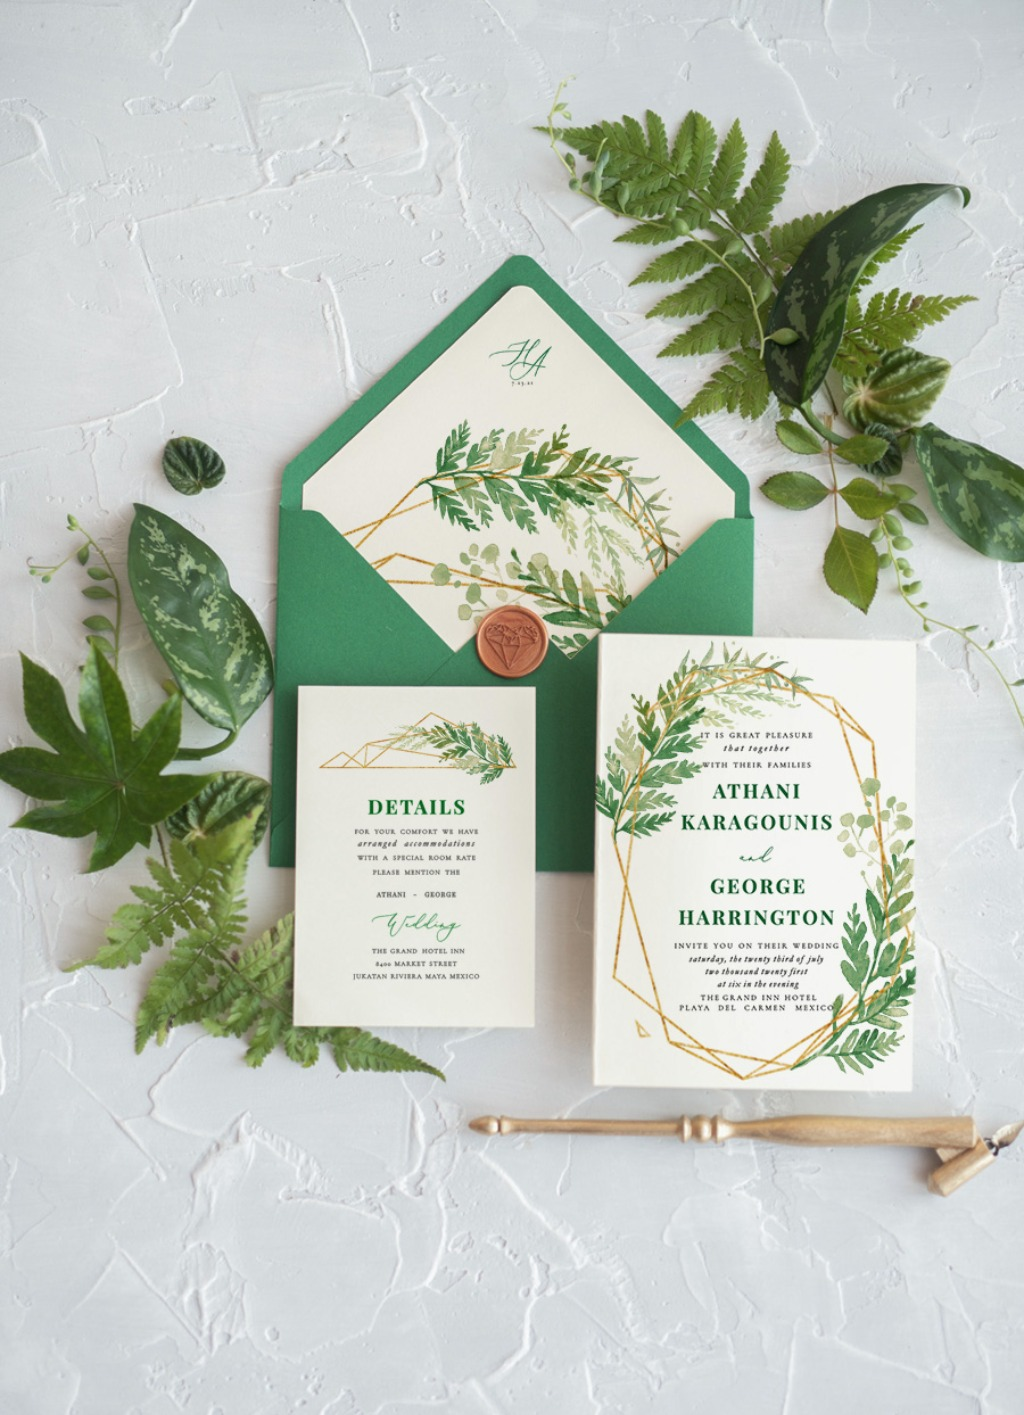 Wedding invitations with geometric details and fern